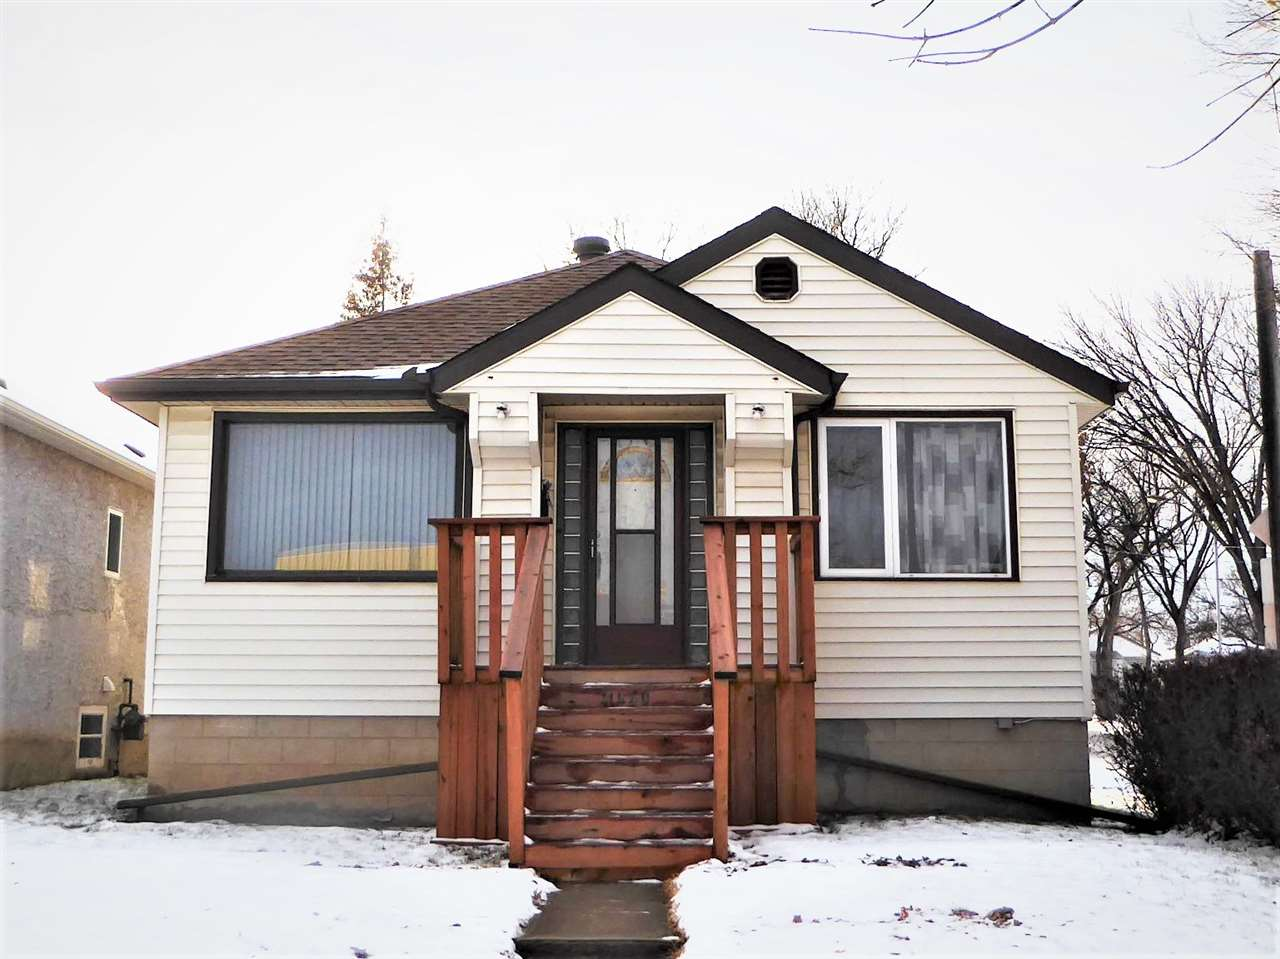 Main Photo: 11450 70 Street NW in Edmonton: Zone 09 House for sale : MLS®# E4135321